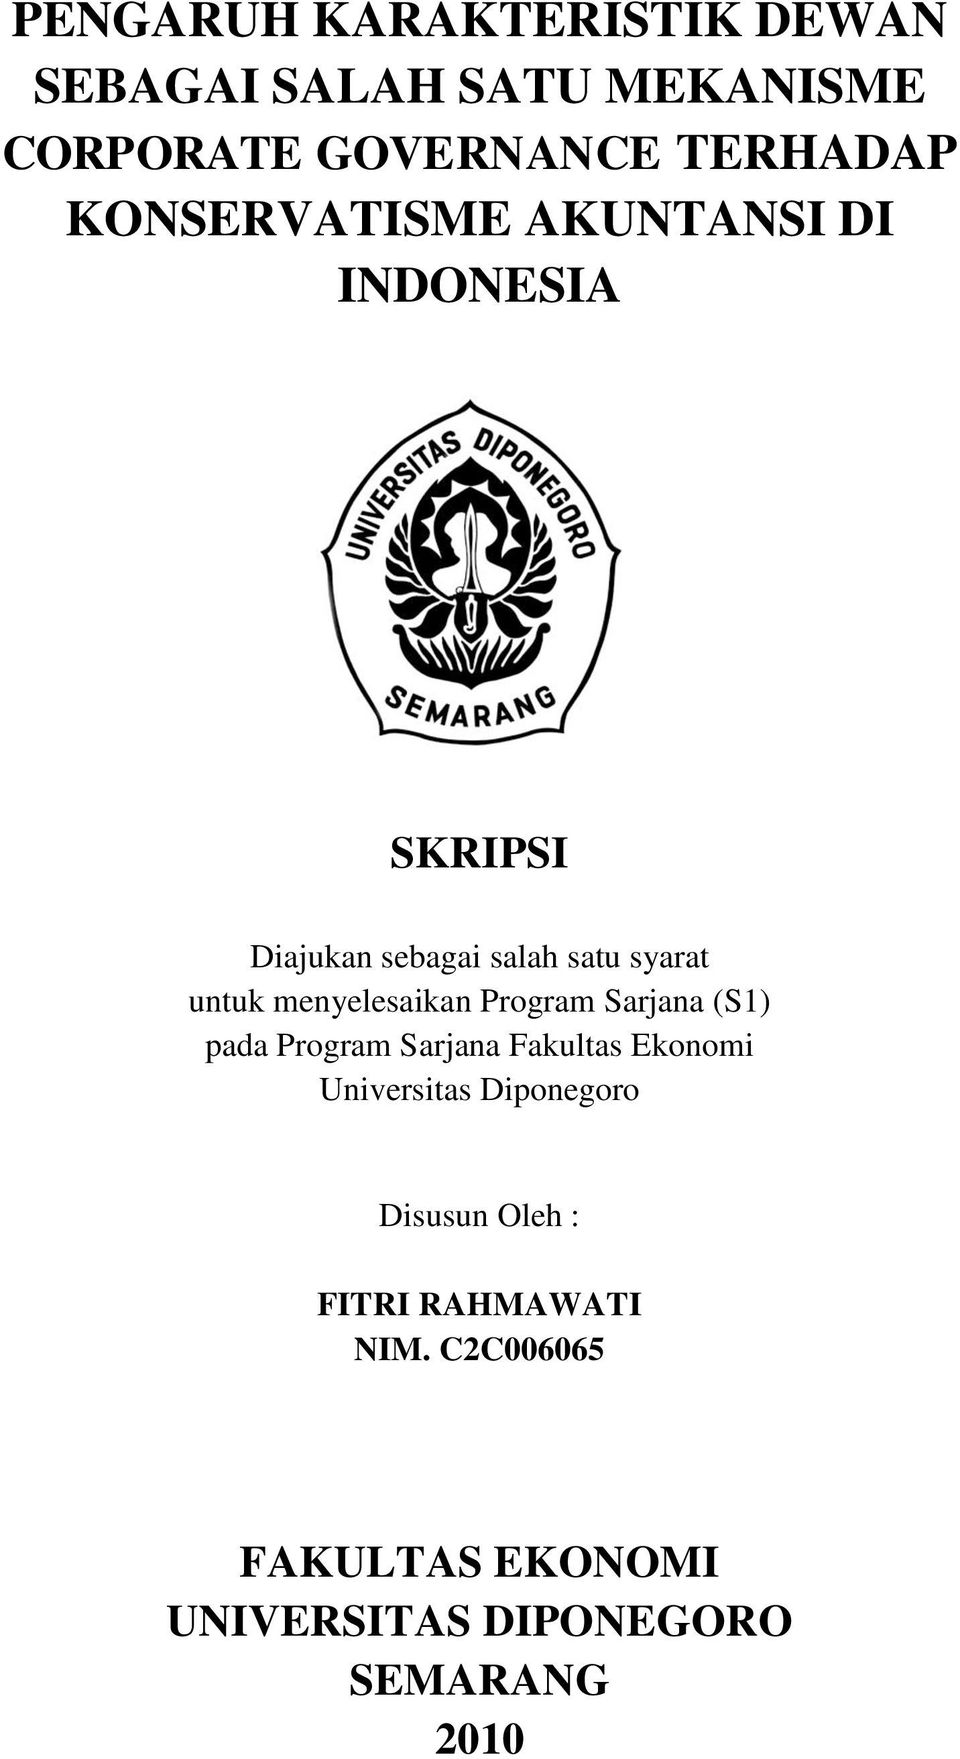 menyelesaikan Program Sarjana (S1) pada Program Sarjana Fakultas Ekonomi Universitas